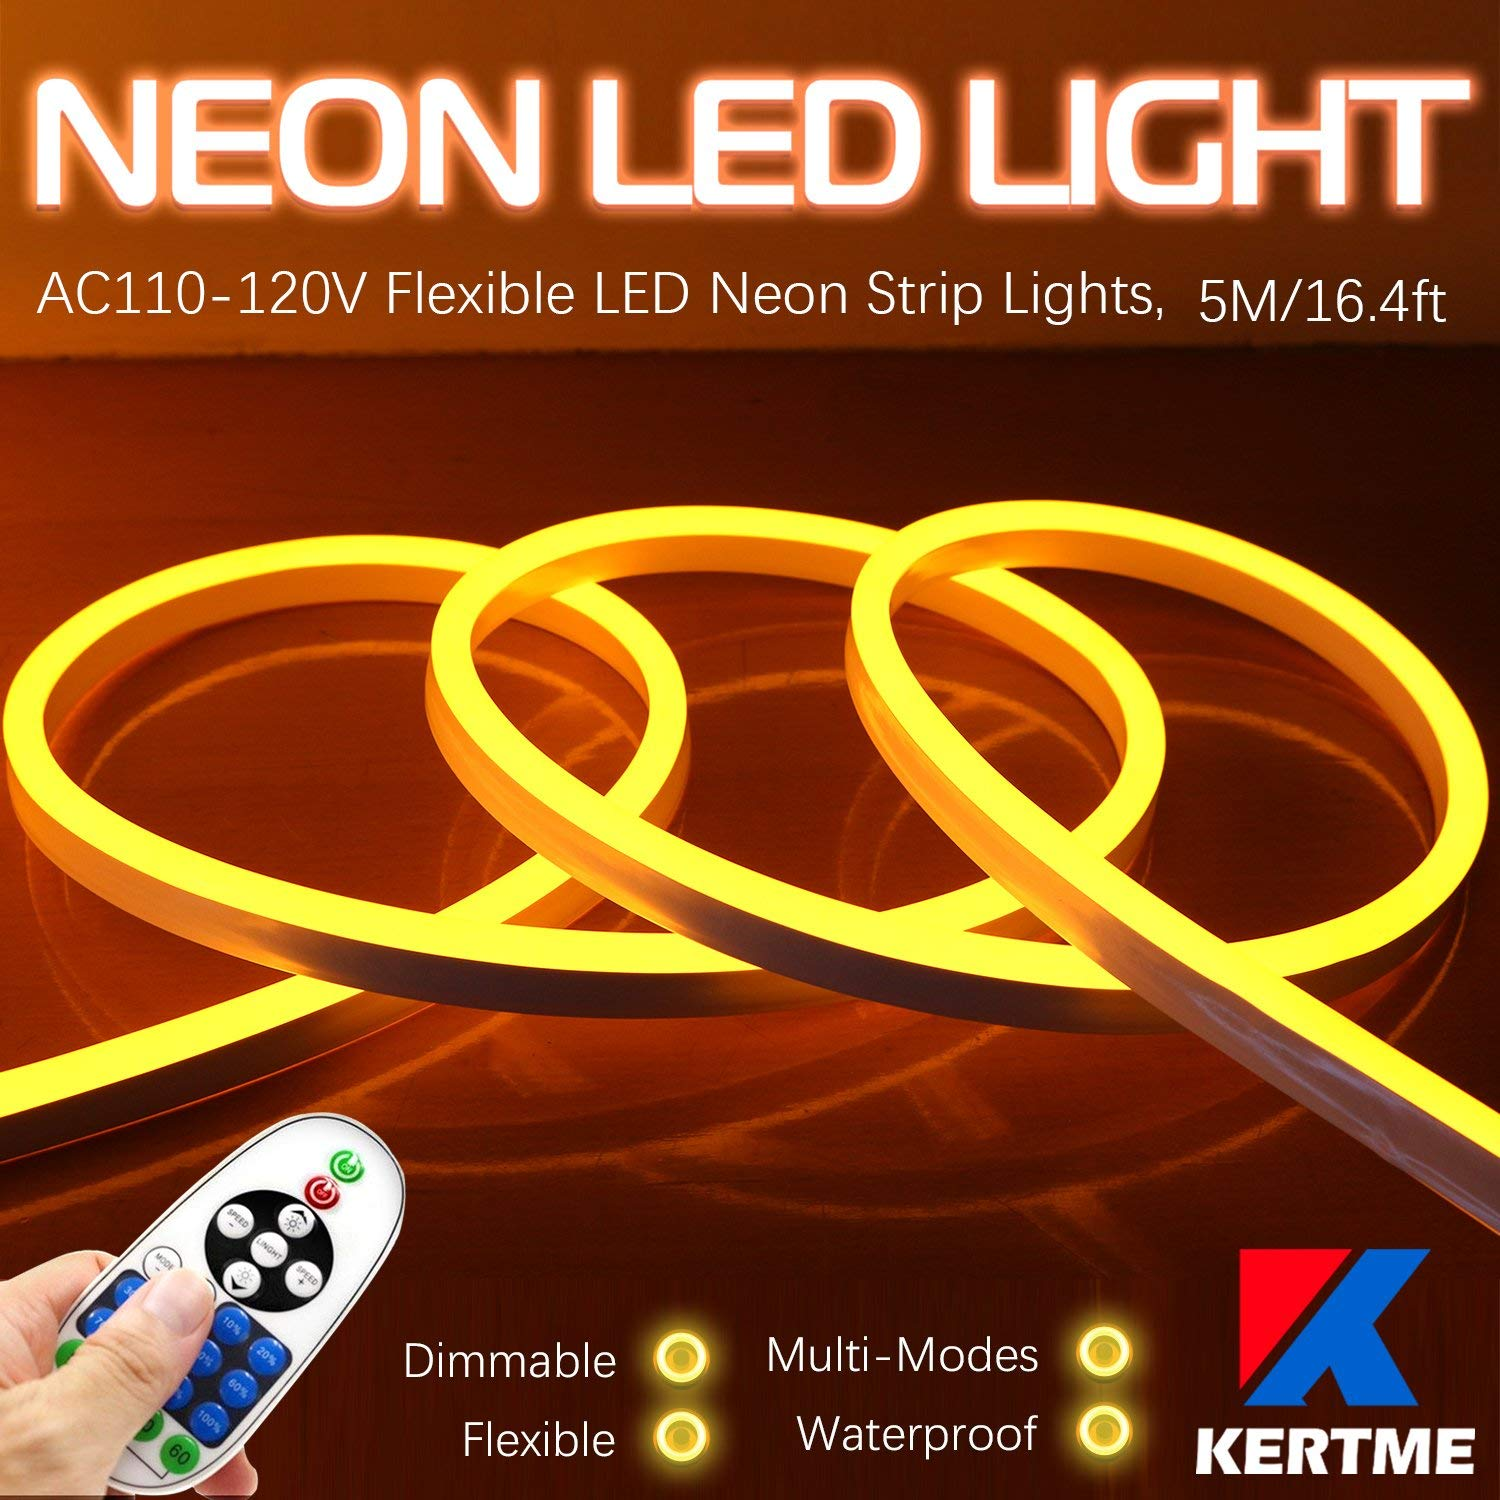 KERTME Neon Led Type AC 110-120V LED NEON Light Strip, Flexible/Waterproof/Dimmable/Multi-Modes LED Rope Light + 23 Keys Remote for Home/Garden/Building Decoration (16.4ft/5m, Golden Yellow)